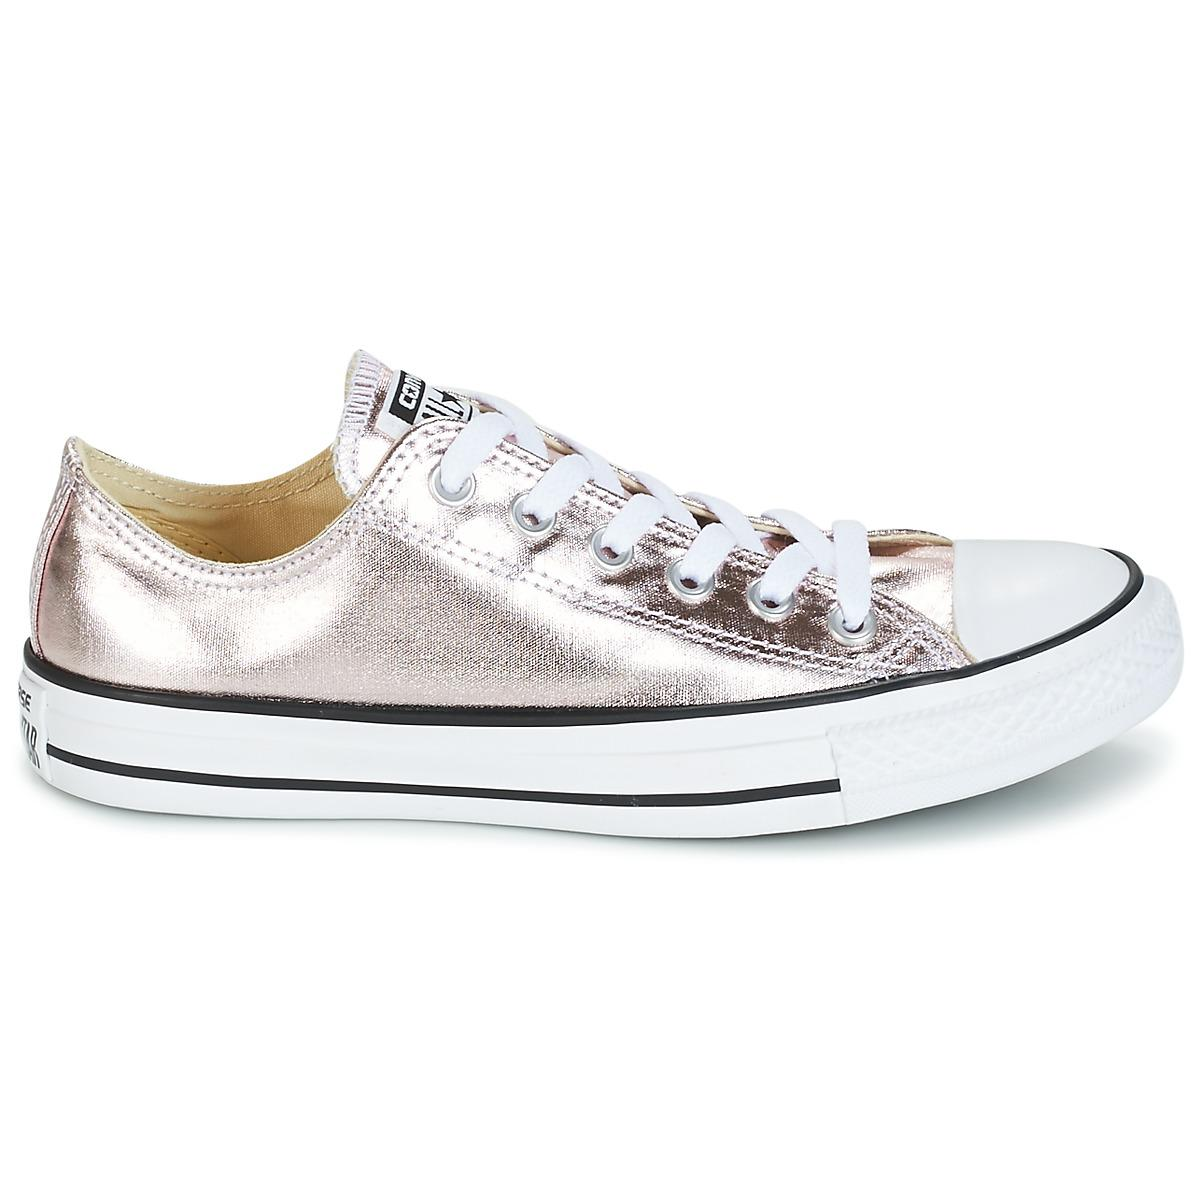 4a2f69676823 Gallery. Previously sold at  rubbersole.co.uk · Women s Converse Chuck  Taylor